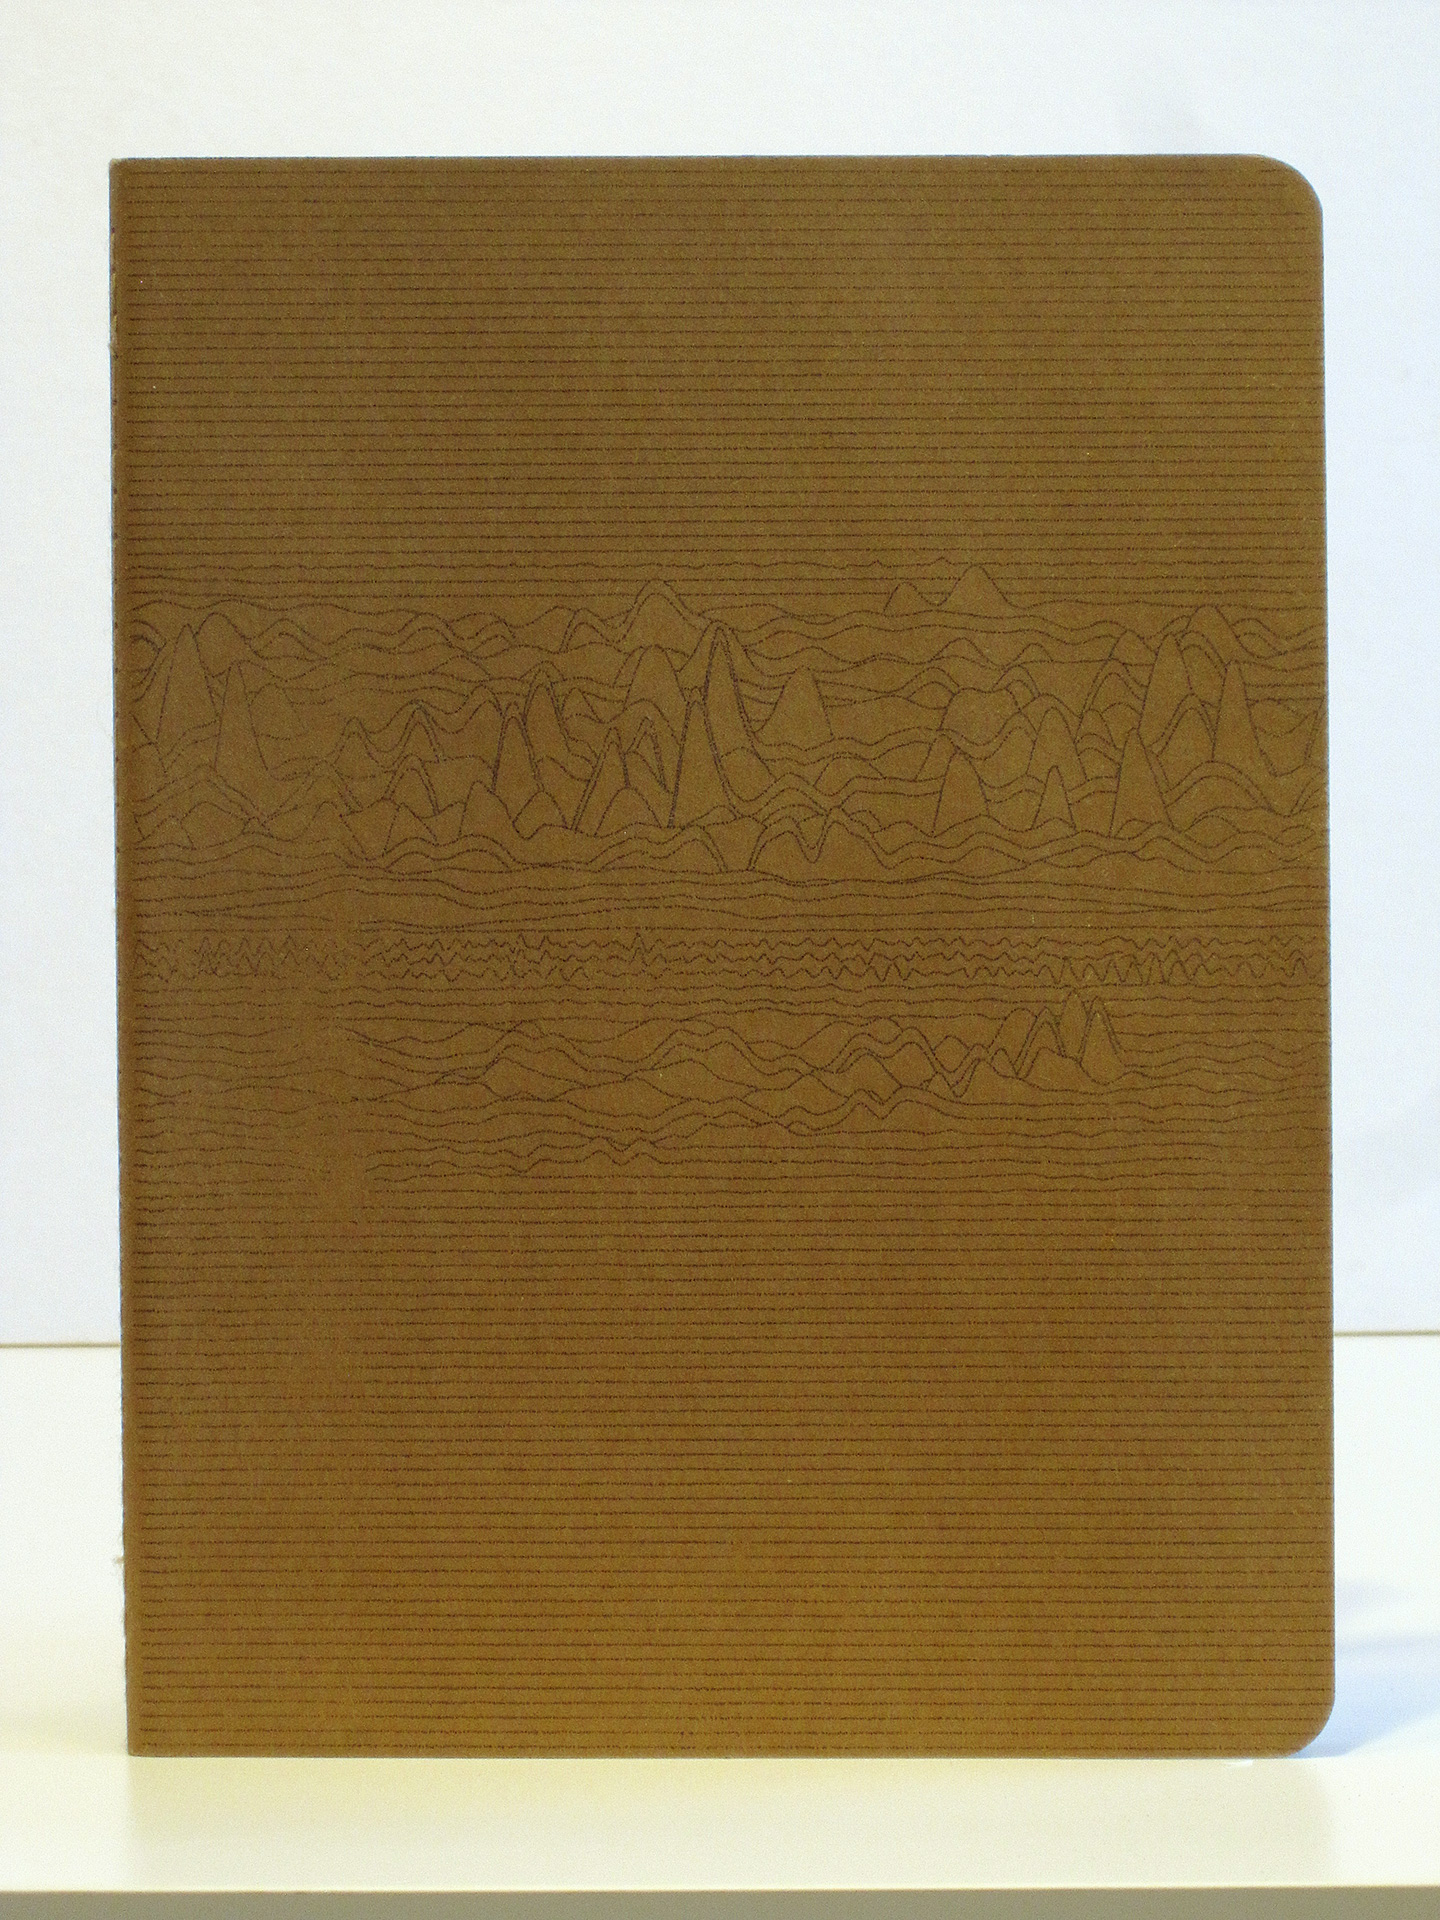 moleskine-notebook-imprint-1